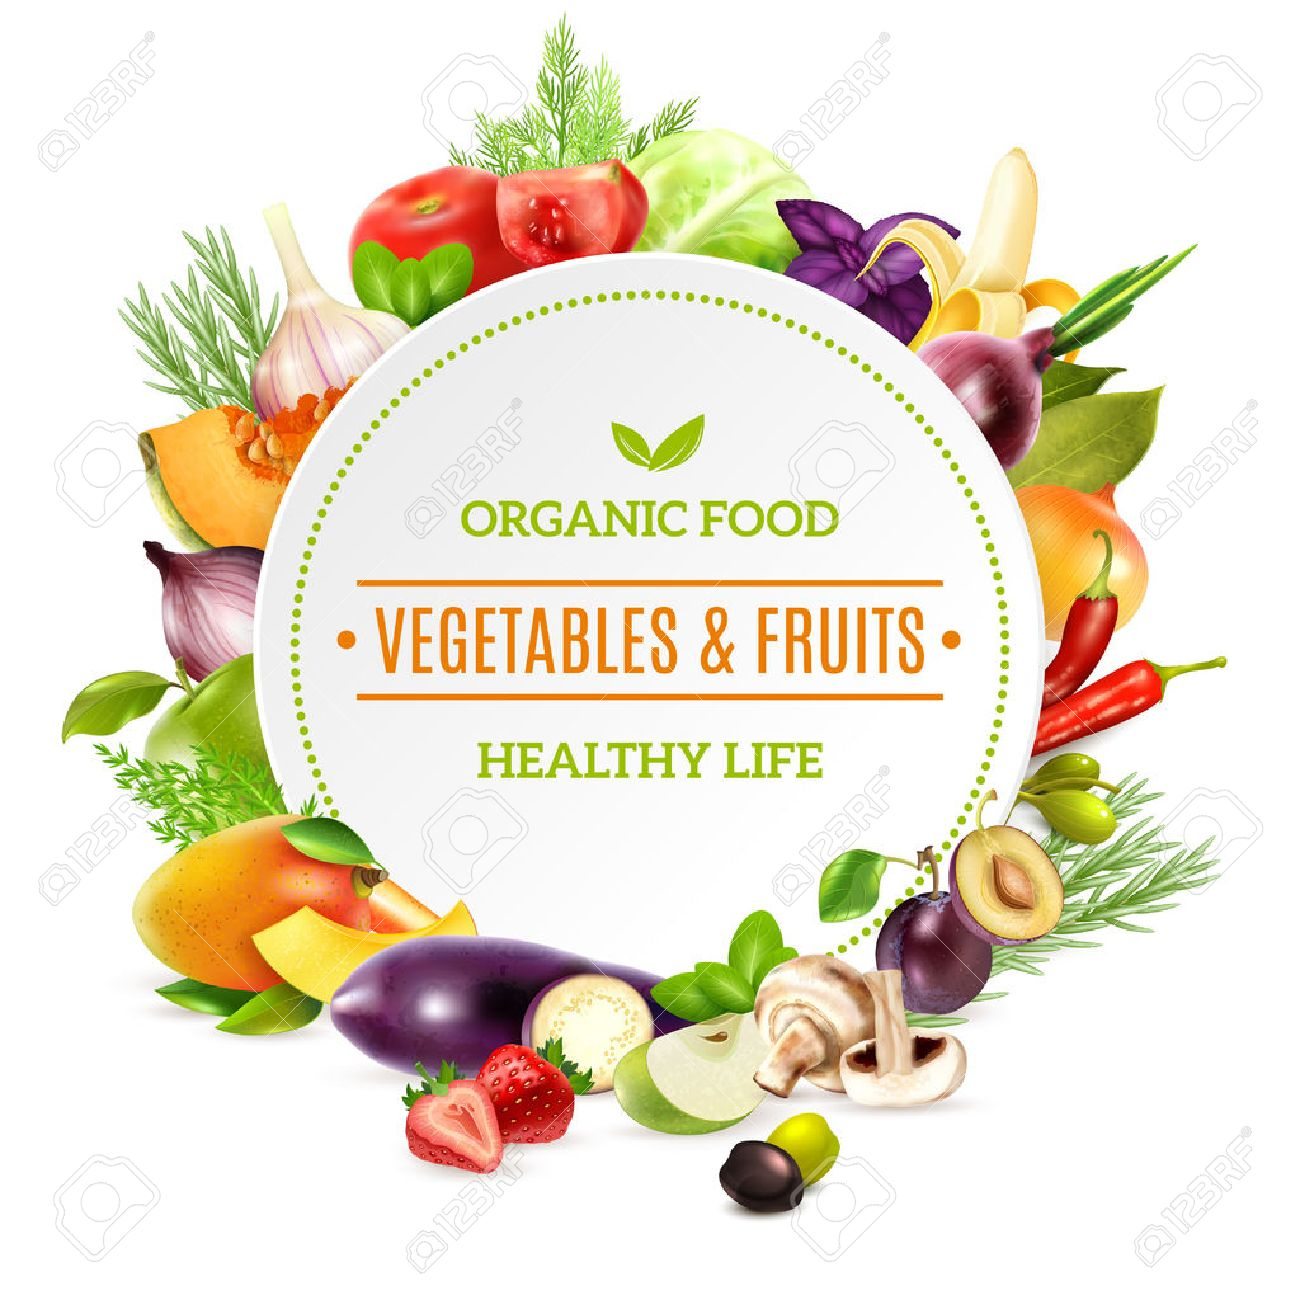 Natural organic food background with colorful bright frame contained fresh vegetables and fruits set pictured in realistic style vector illustration - 58476723